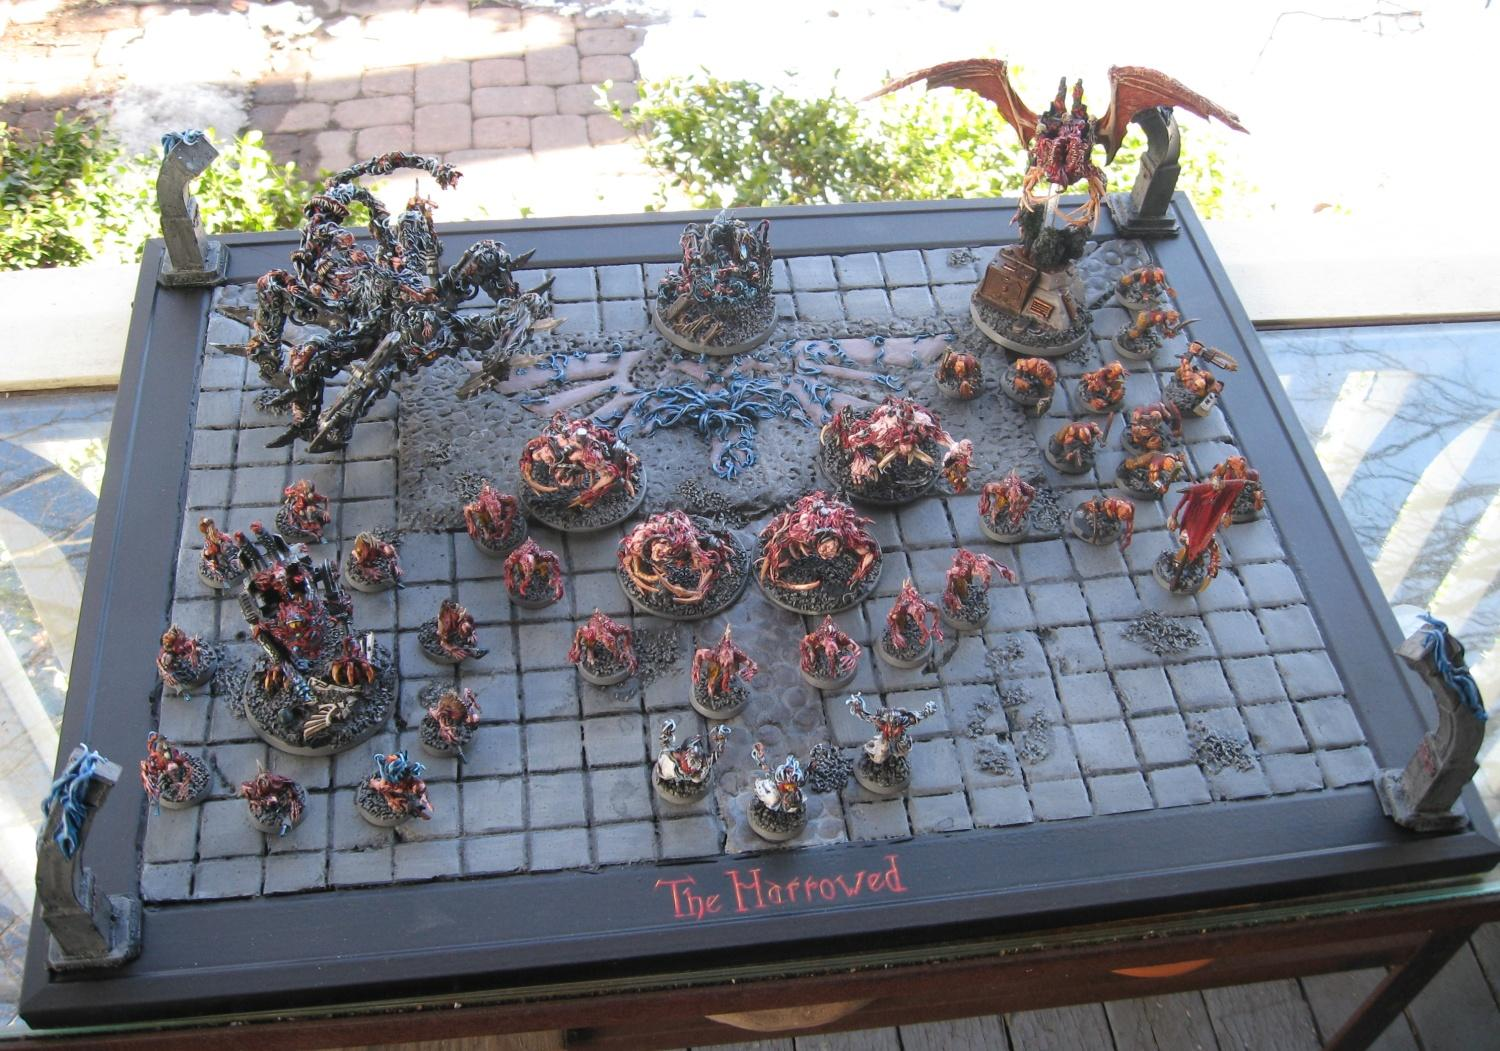 Army, Chaos, Daemons, Display Board, Harrowed, Lesser Daemons, Painted, Soul Grinder, Terrain, Warhammer 40,000